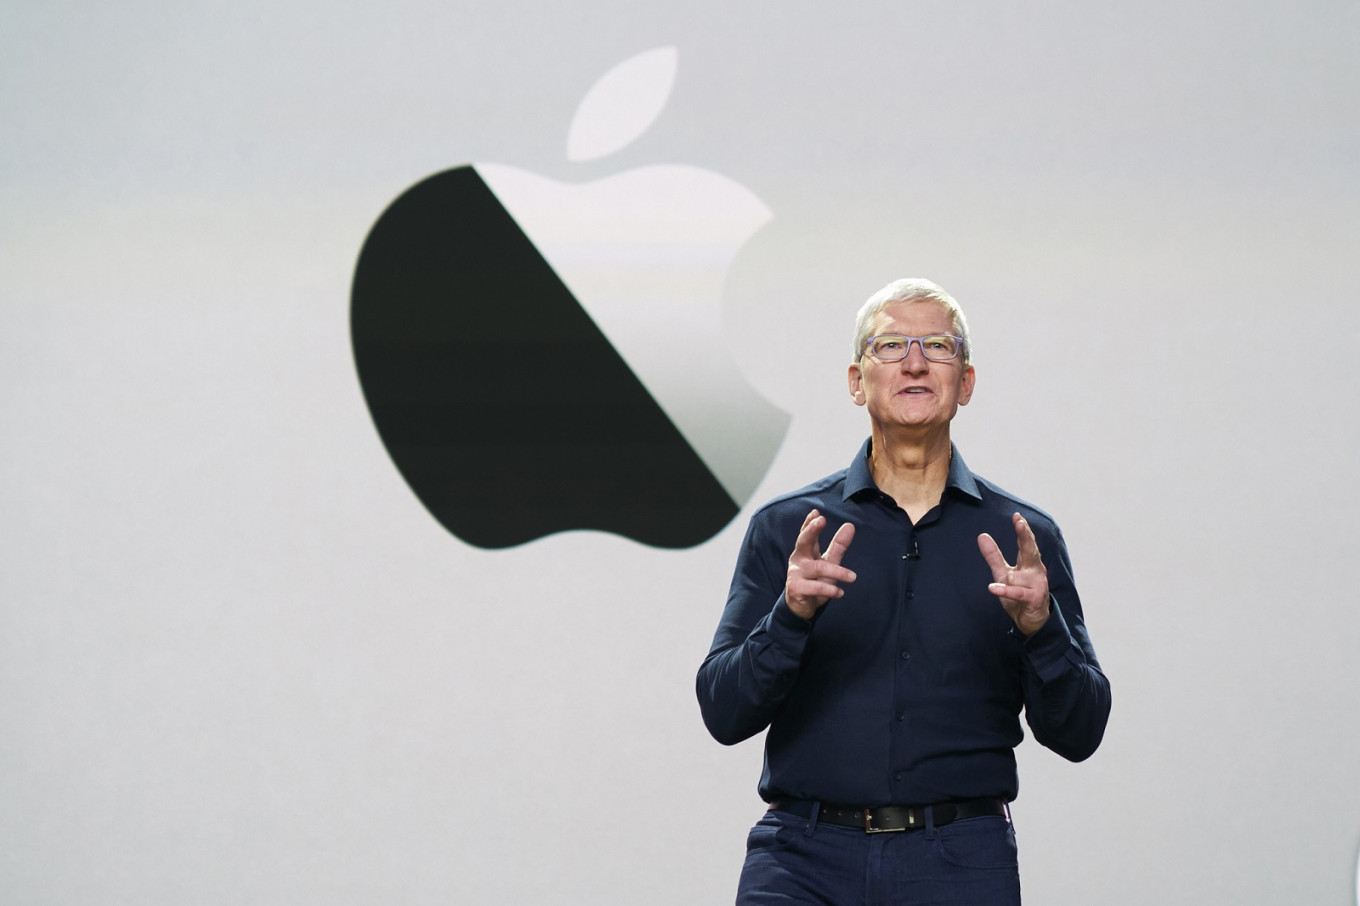 Self-driving cars ideal match for Apple: Tim Cook